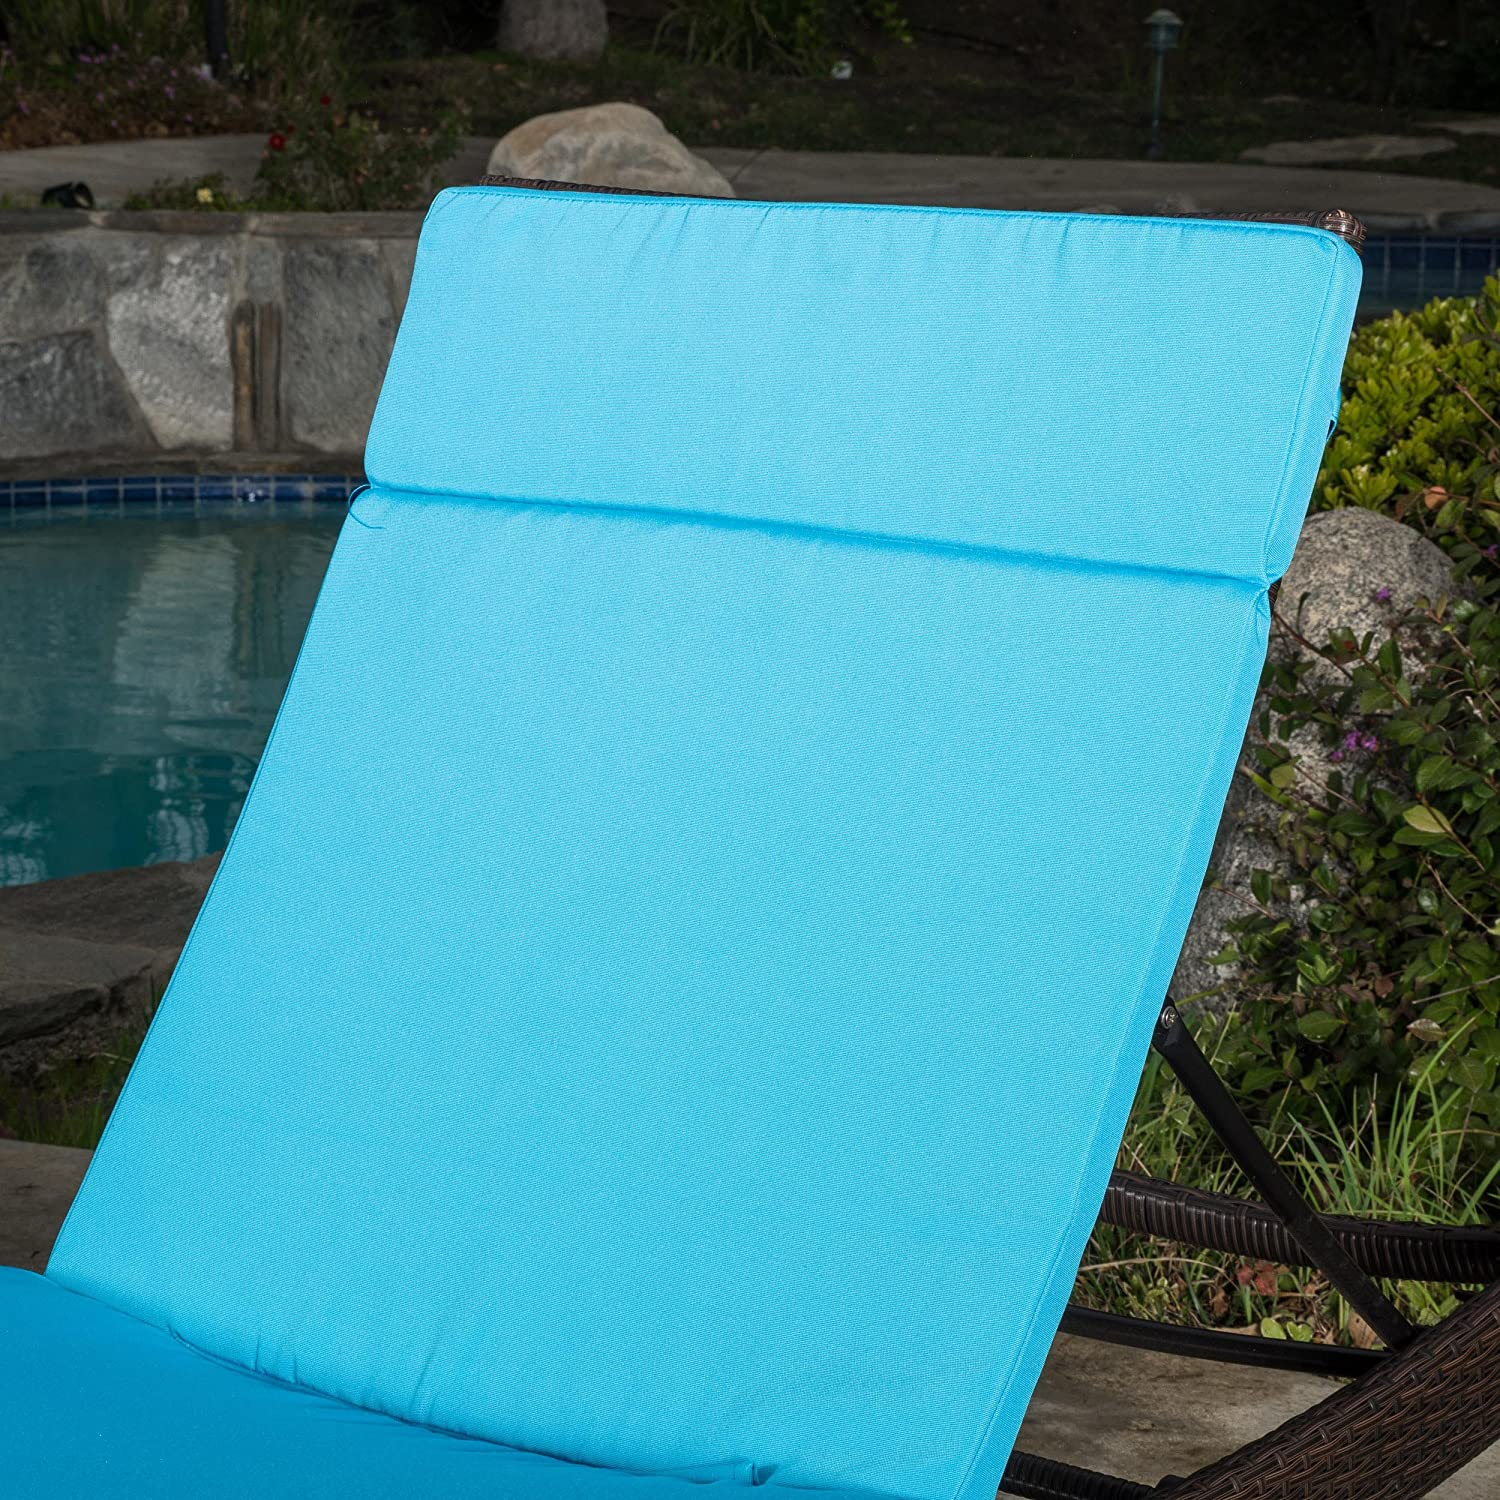 Soleil Outdoor Water Resistant Chaise Lounge Cushion Blue